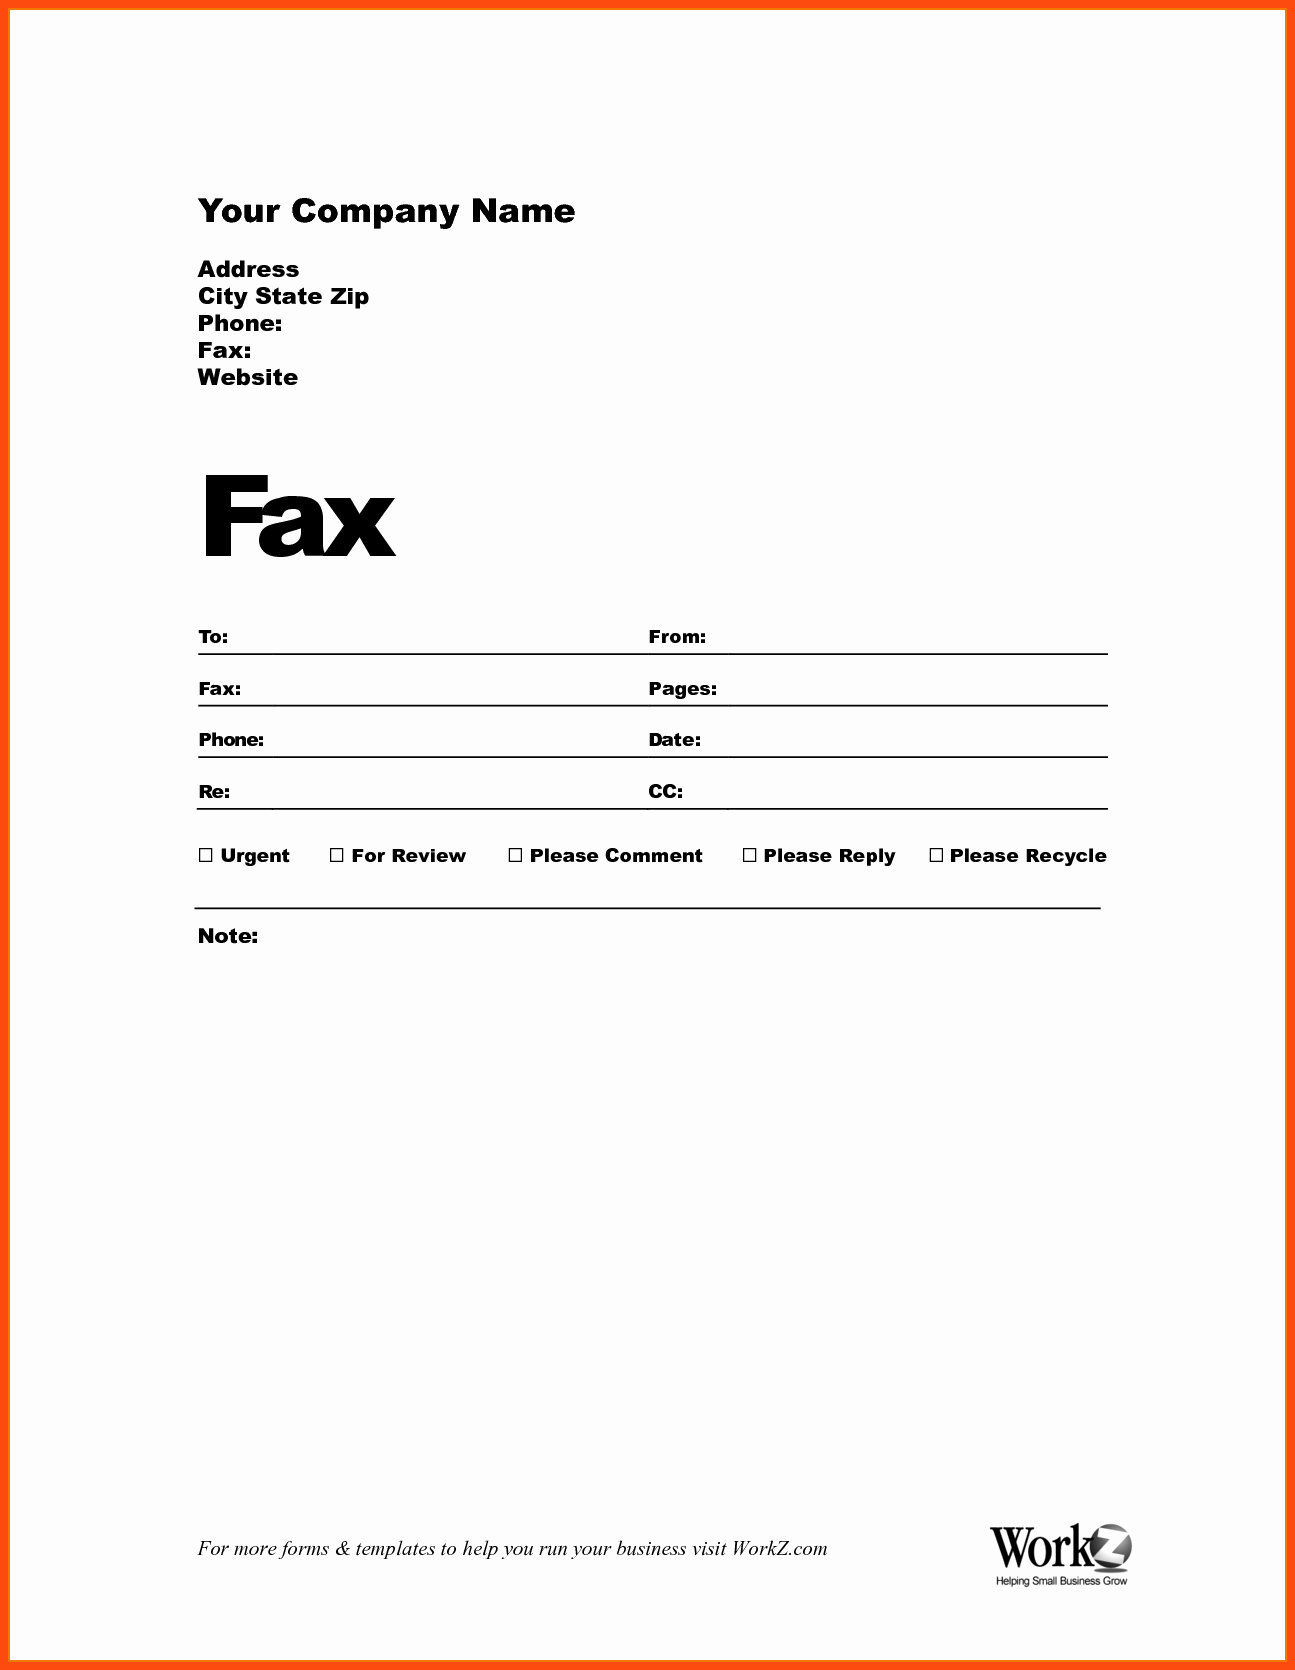 Free Blank Fax Cover Sheet Awesome How to Fill Out A Fax Cover Sheet